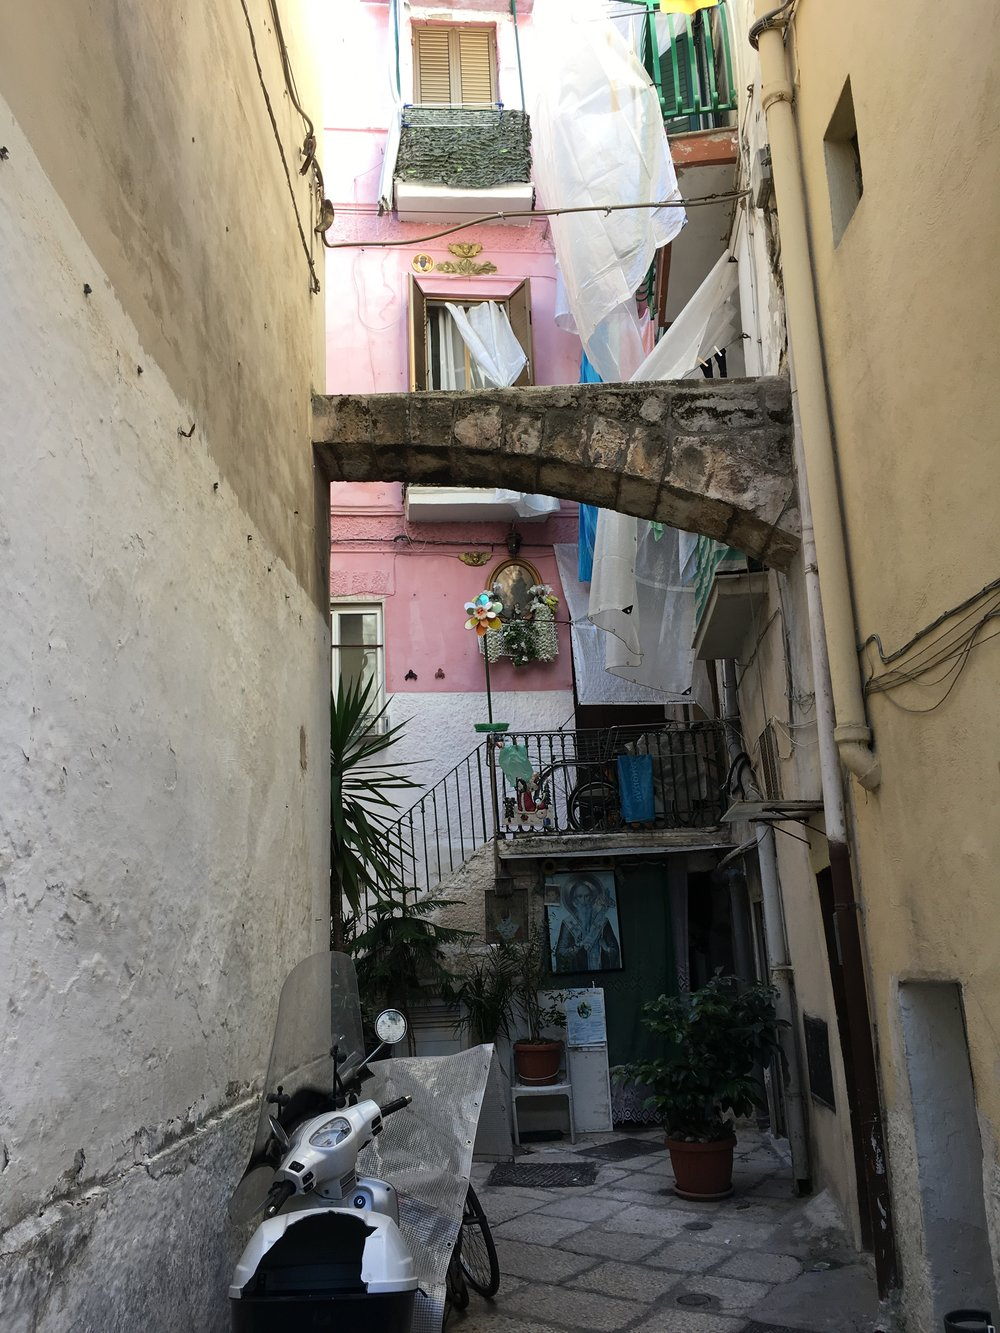 A neighboring courtyard with three posters of different saints, and laundry